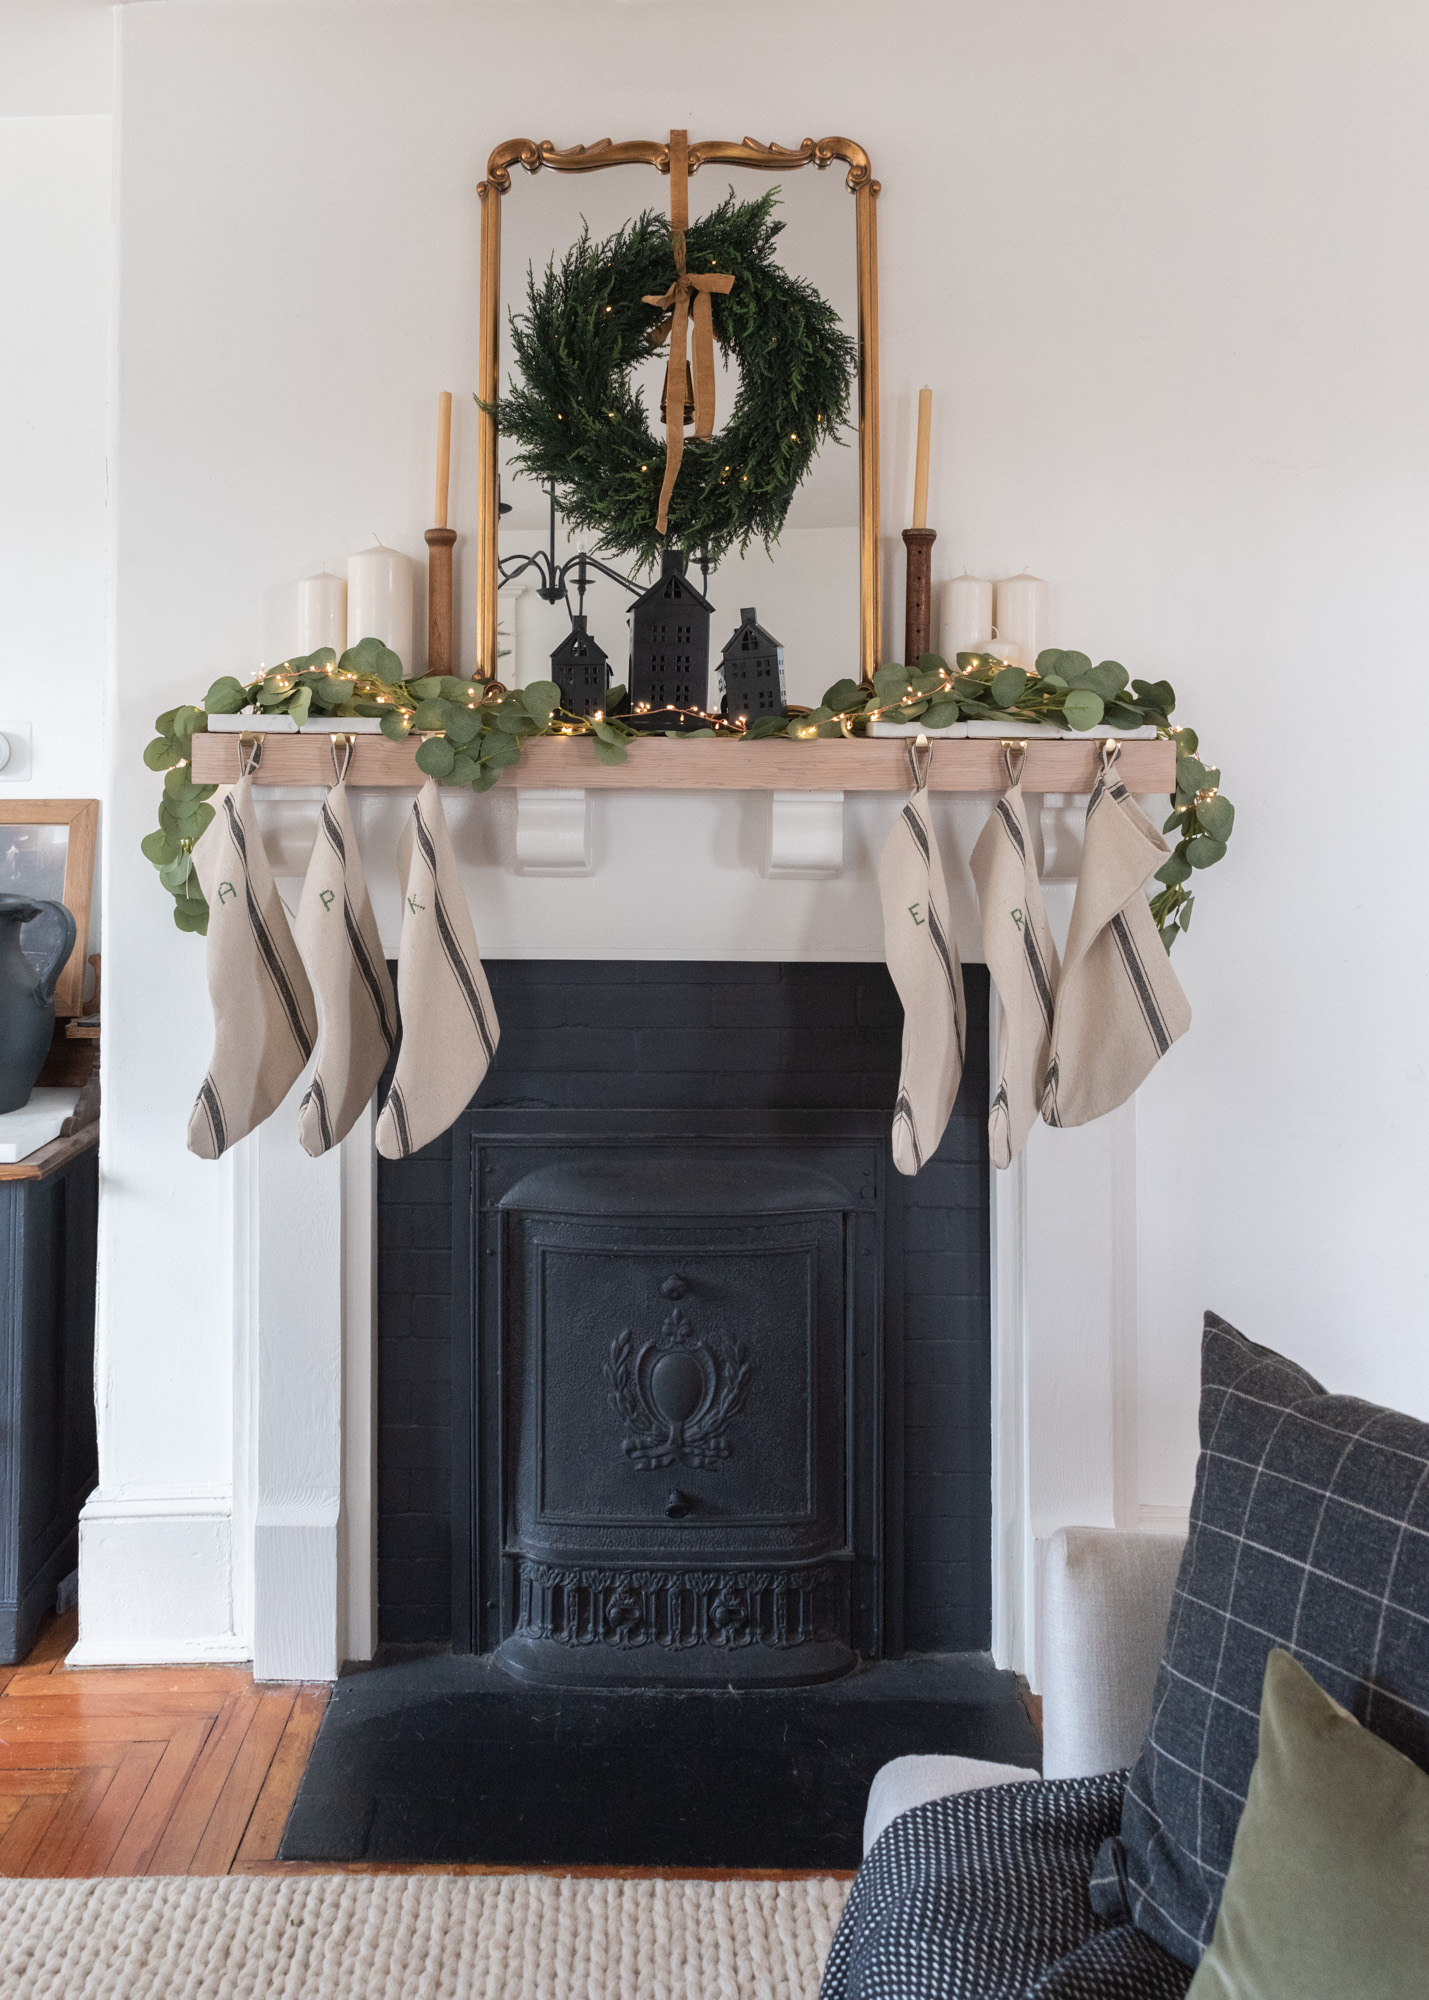 The Wild decoelis | 2020 Holiday Home Tour | Century home fireplace with Summer cover, black white and raw wood mantle, Flower sack handmade stockings with embroidered initials, twinkle lights, black houses, eucalyptus garland